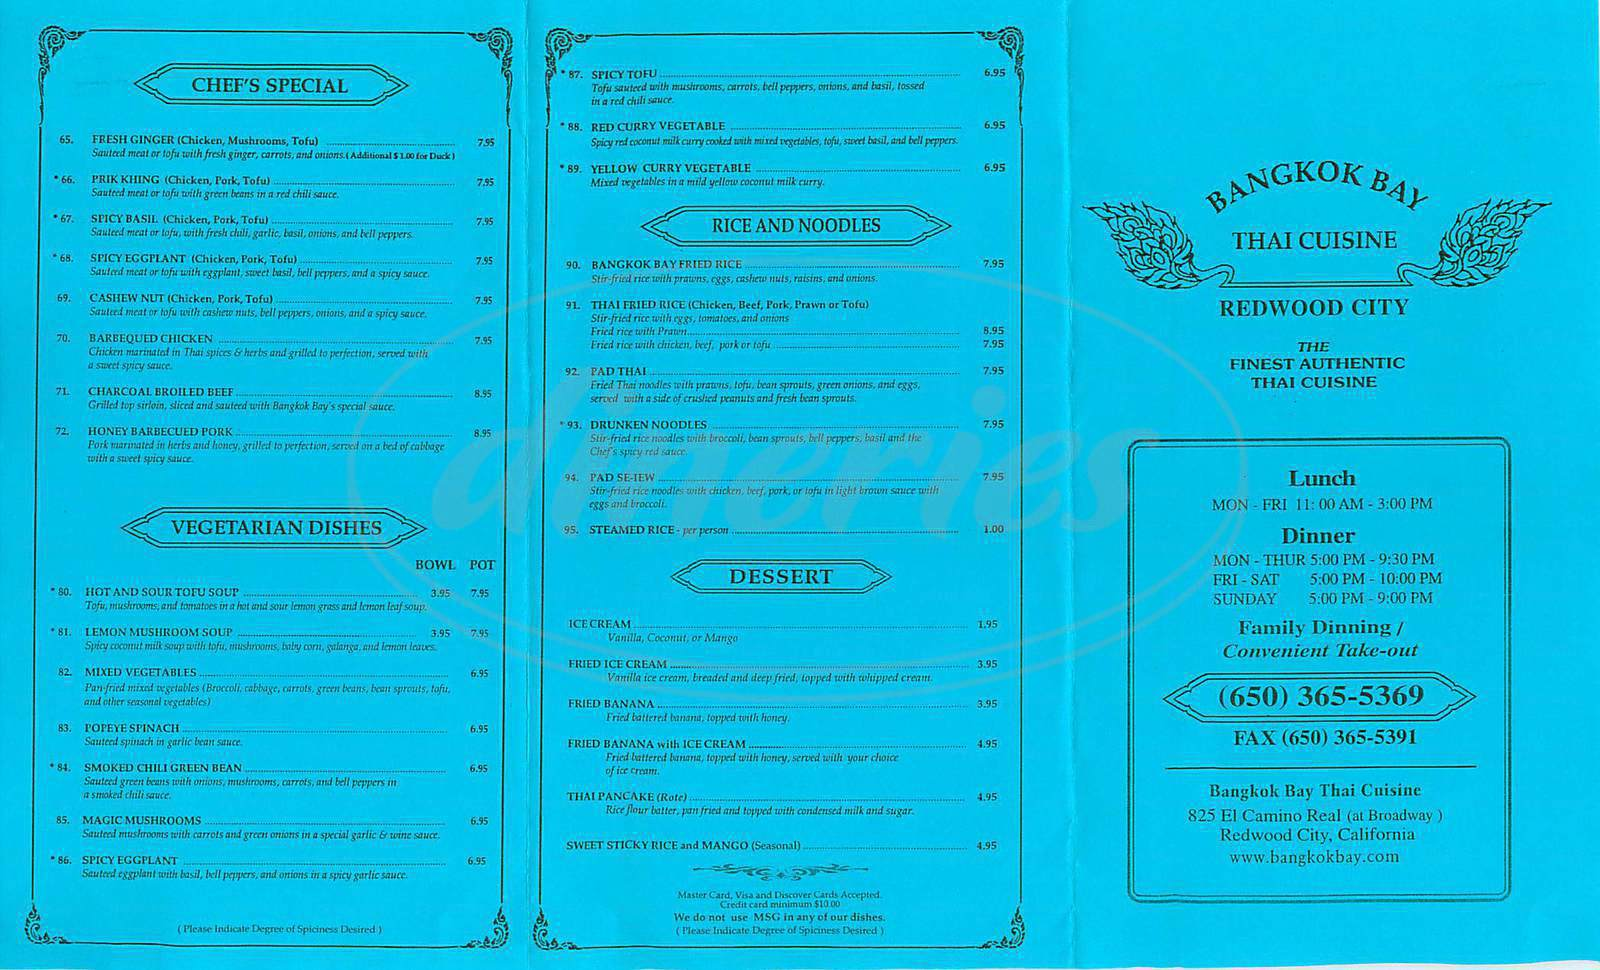 menu for Bangkok Bay